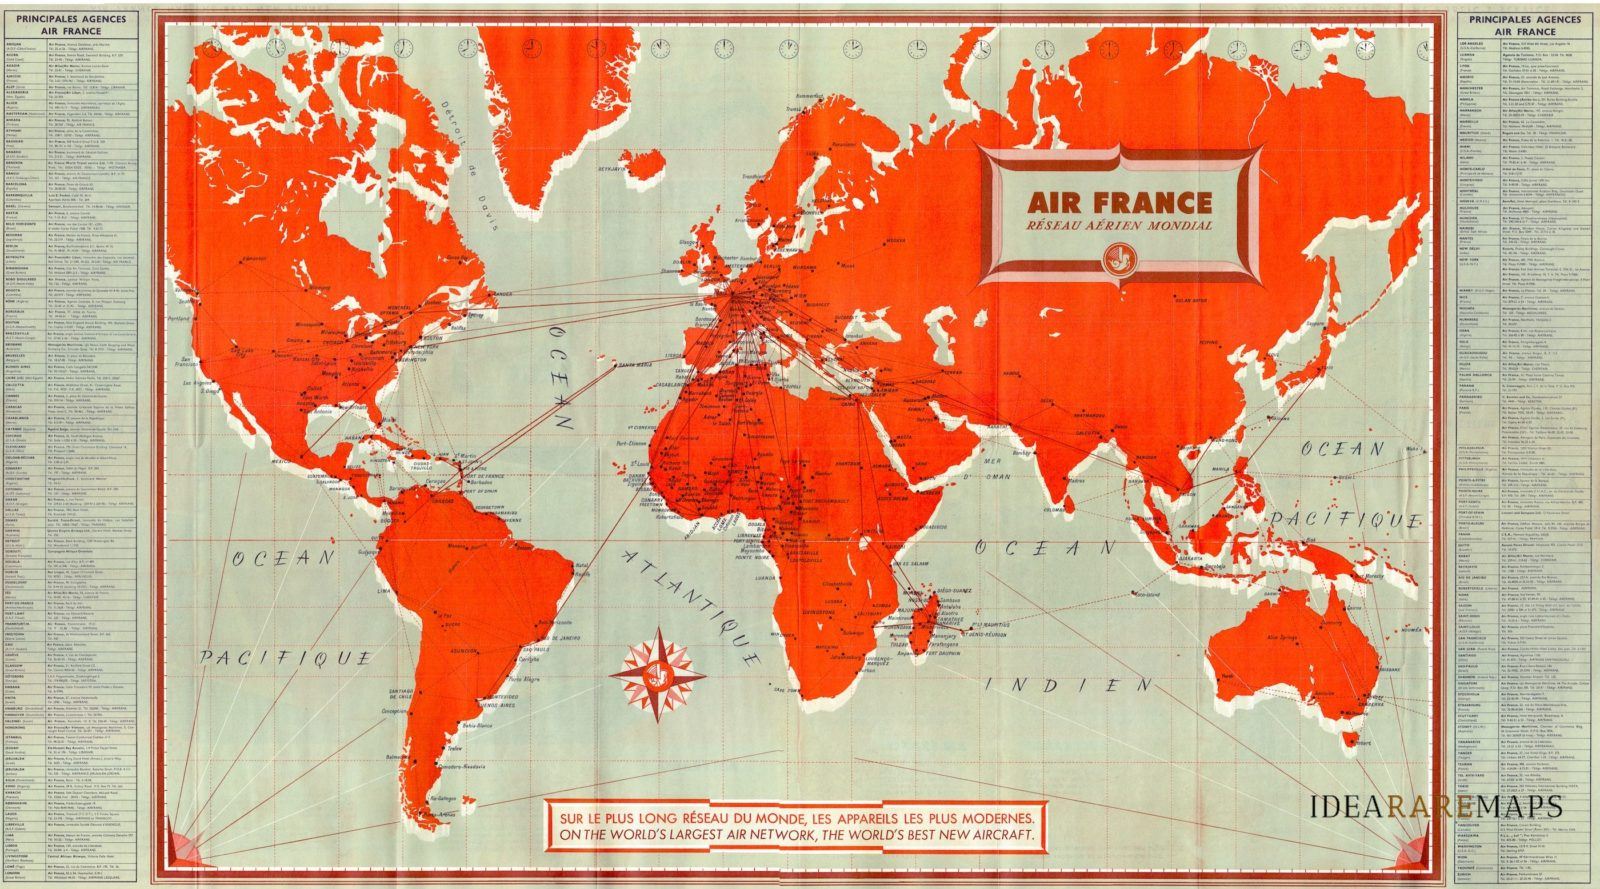 Map Of France 1600.World Map Air France Reseau Aerien Mondial Idea Rare Maps